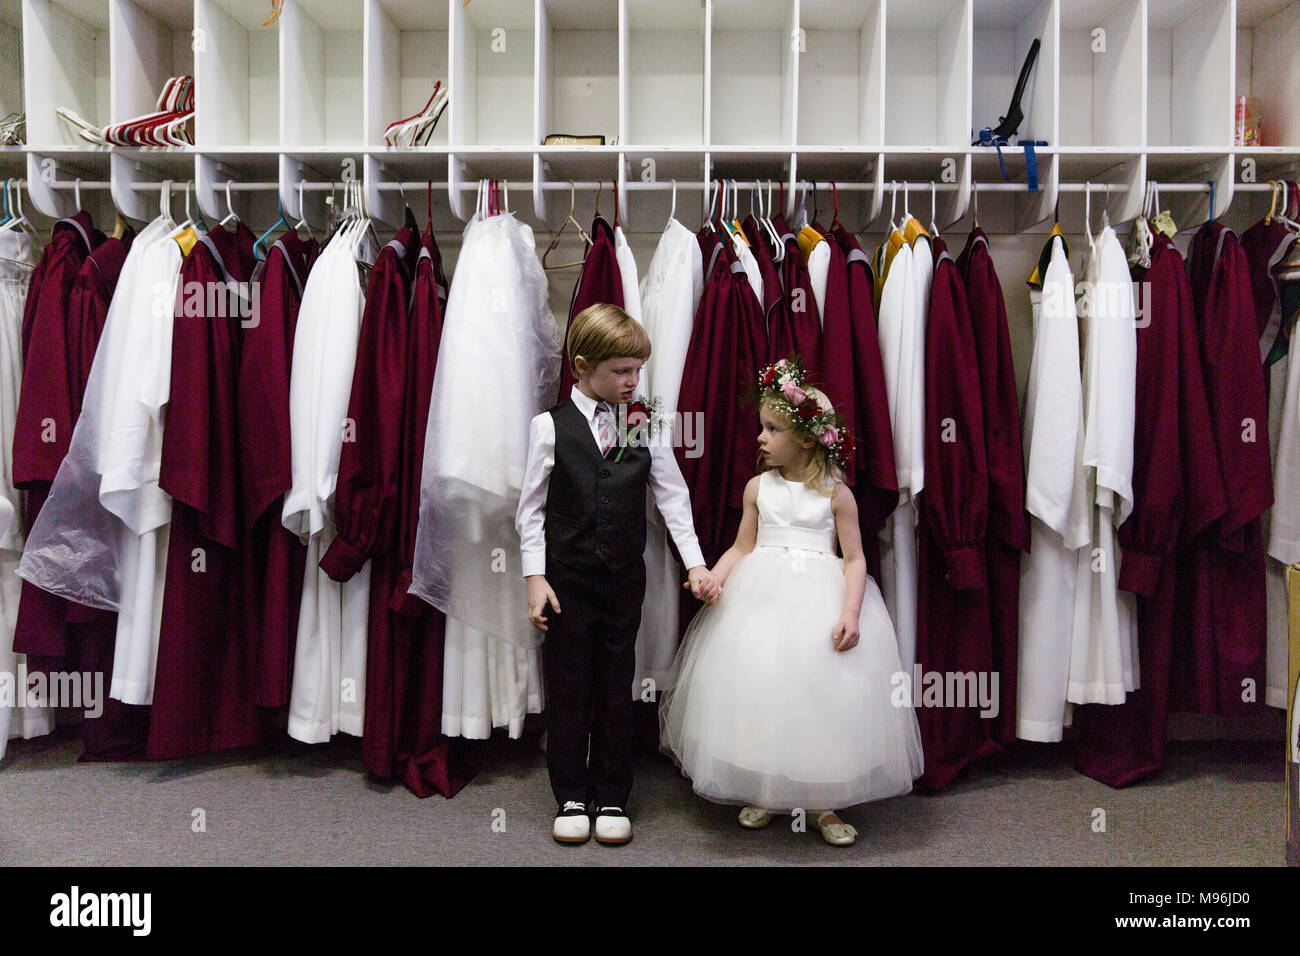 Boy and girl holding hands in front of choir robes - Stock Image